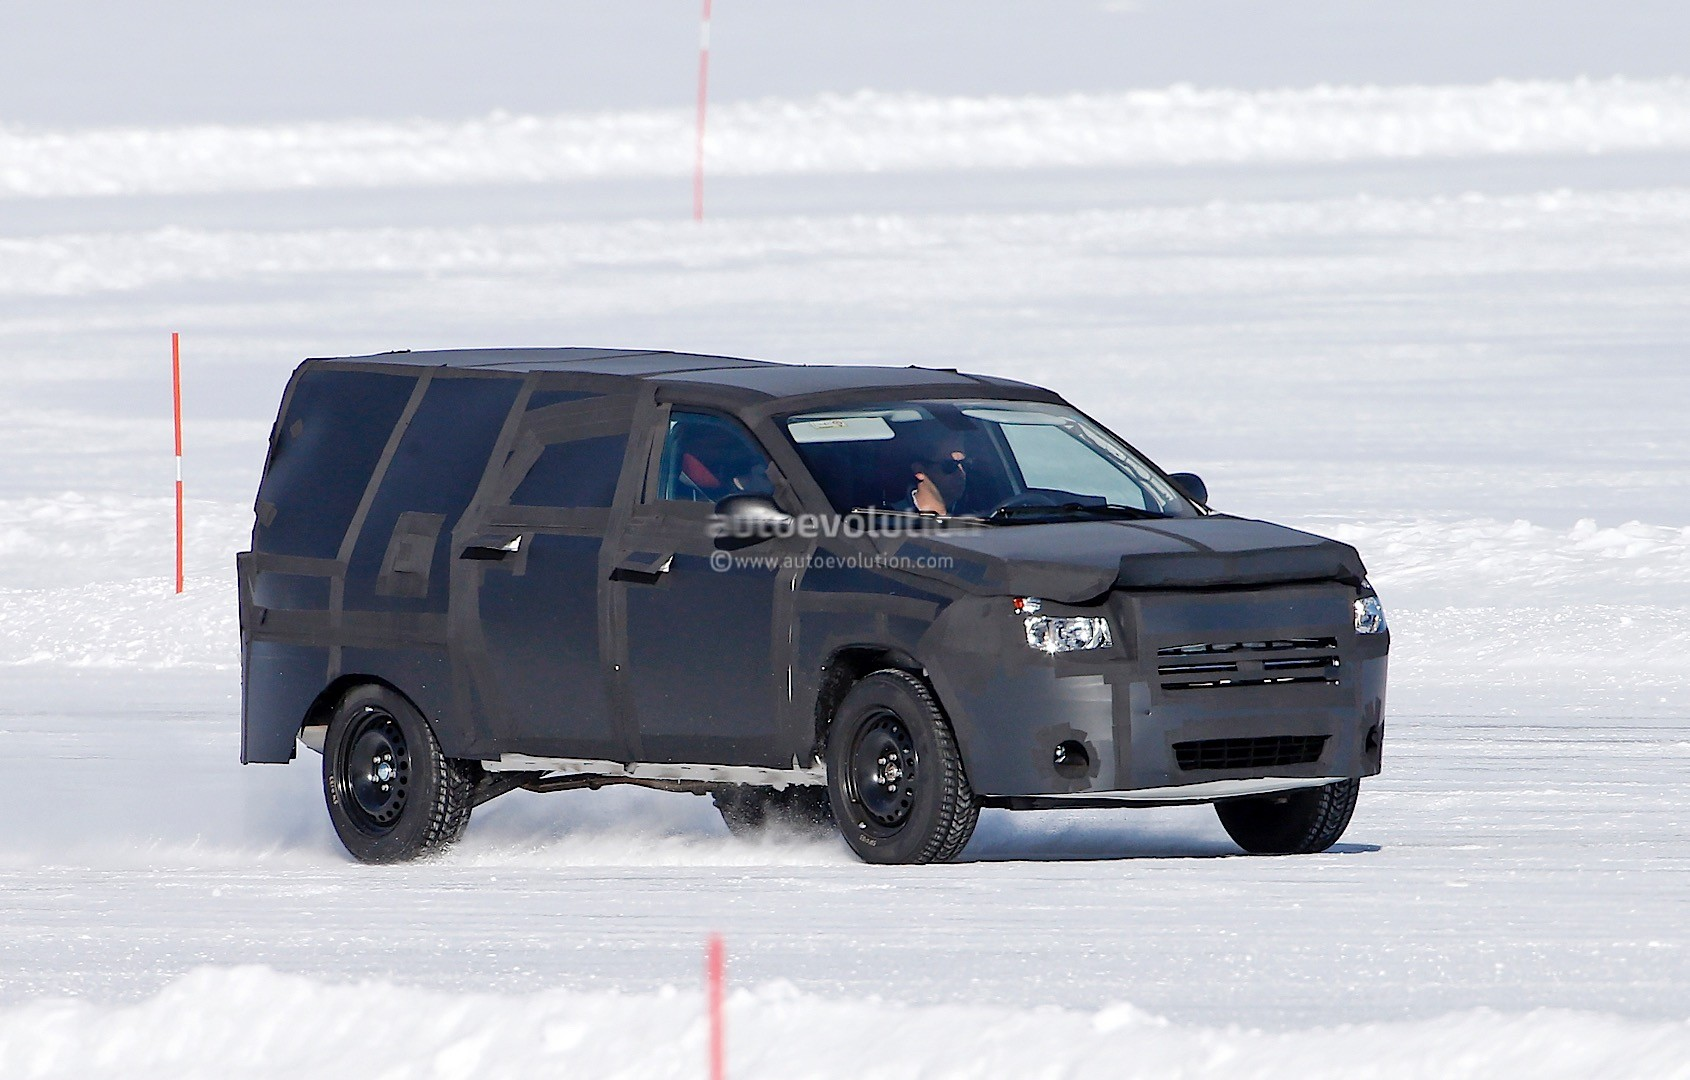 Ram Ceo Claims Is Not Connected To The Mitsubishi Fiat Mid Size Pickup Truck 2017 All New Dodge Dakota Prototype